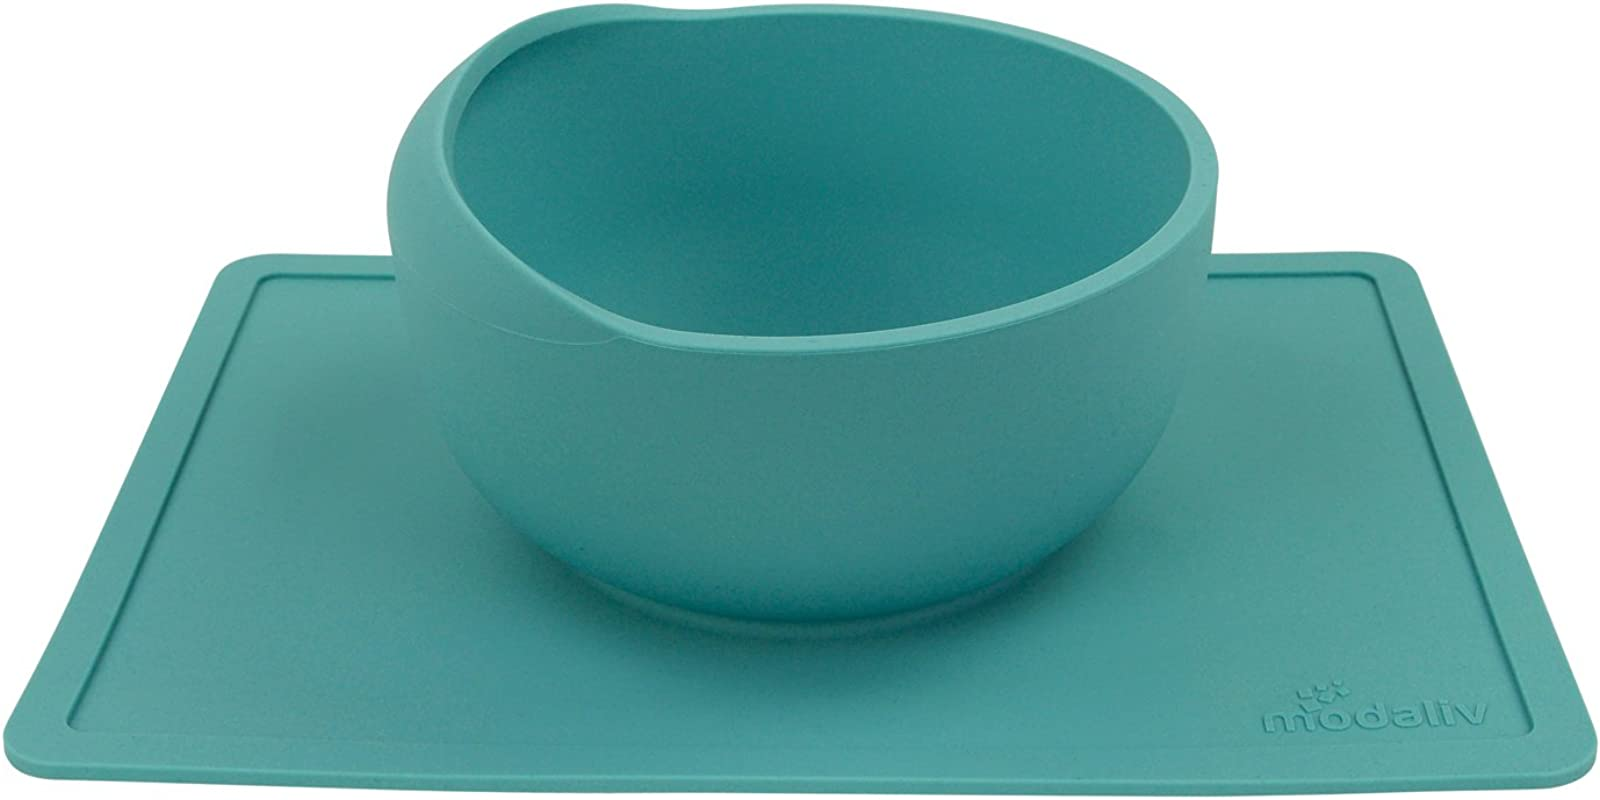 Modaliv Scooper Bowl With Silicone Placemat Suction Base 34oz Non Skid No Spill Food Grade Silicone Dishwasher And Microwave Safe